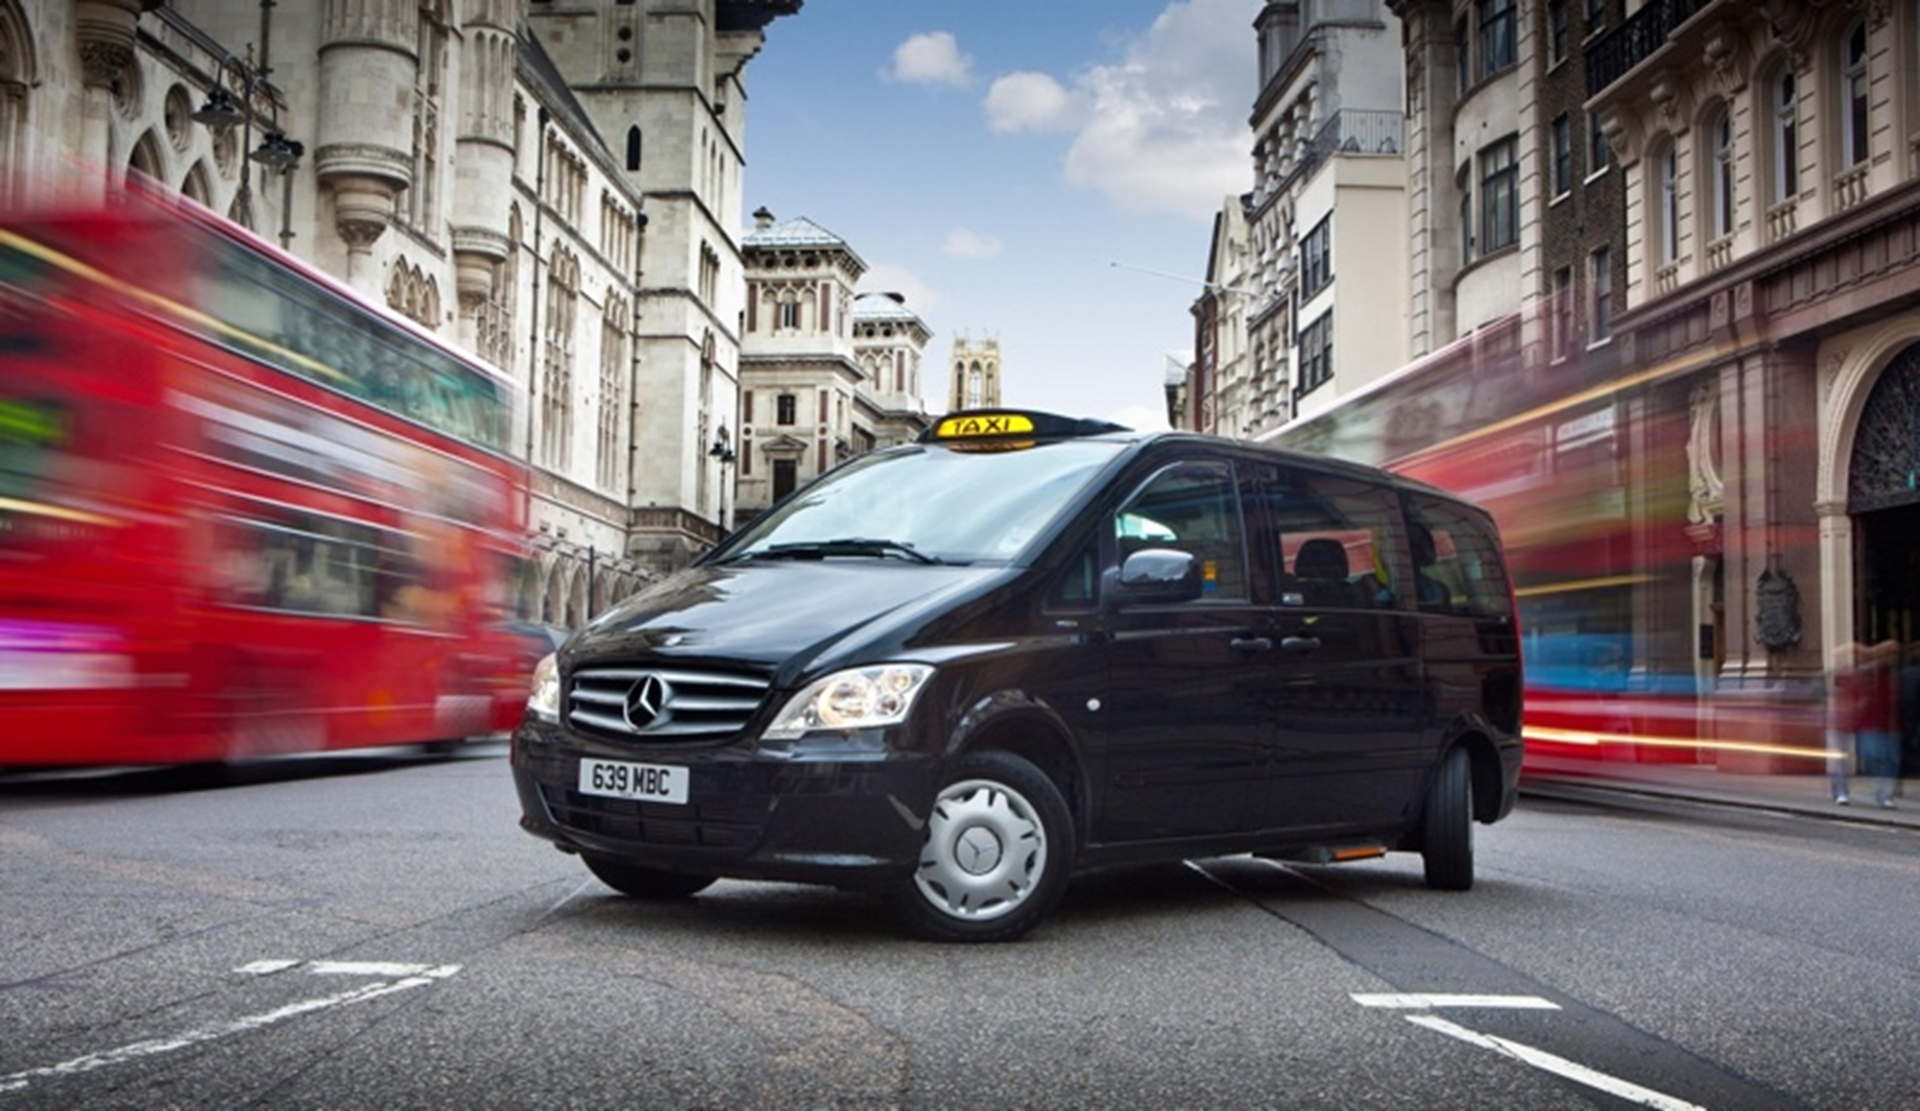 Mercedes-Benz Black Cab